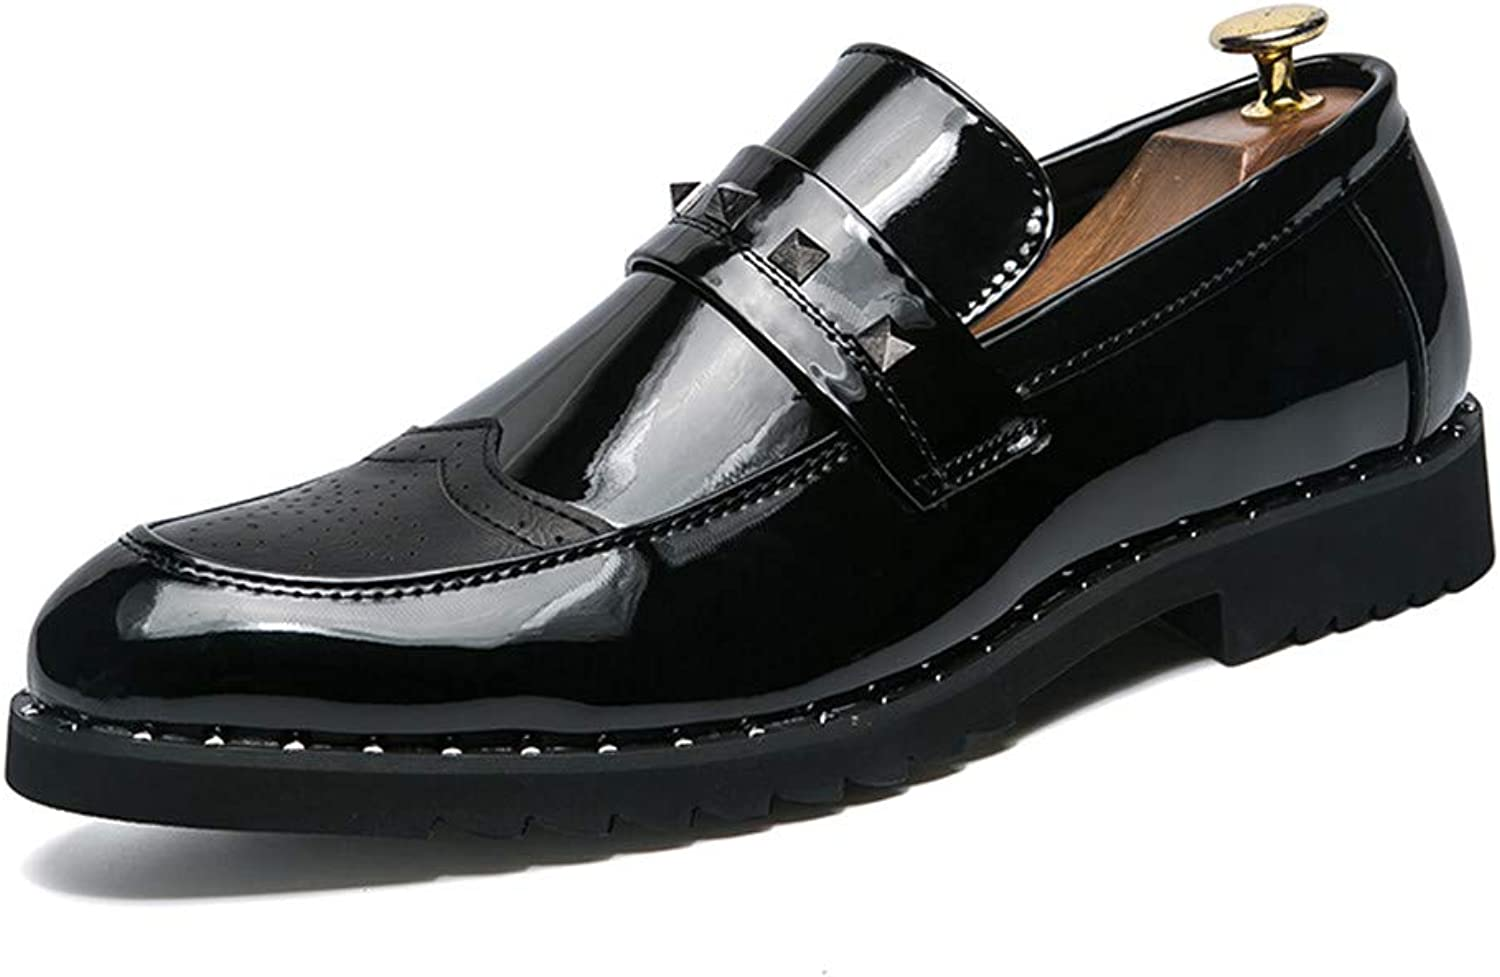 Z.L.F shoes Men's Business Oxford Casual Retro Personality Rivet Patent Leather Brogue shoes Leather shoes